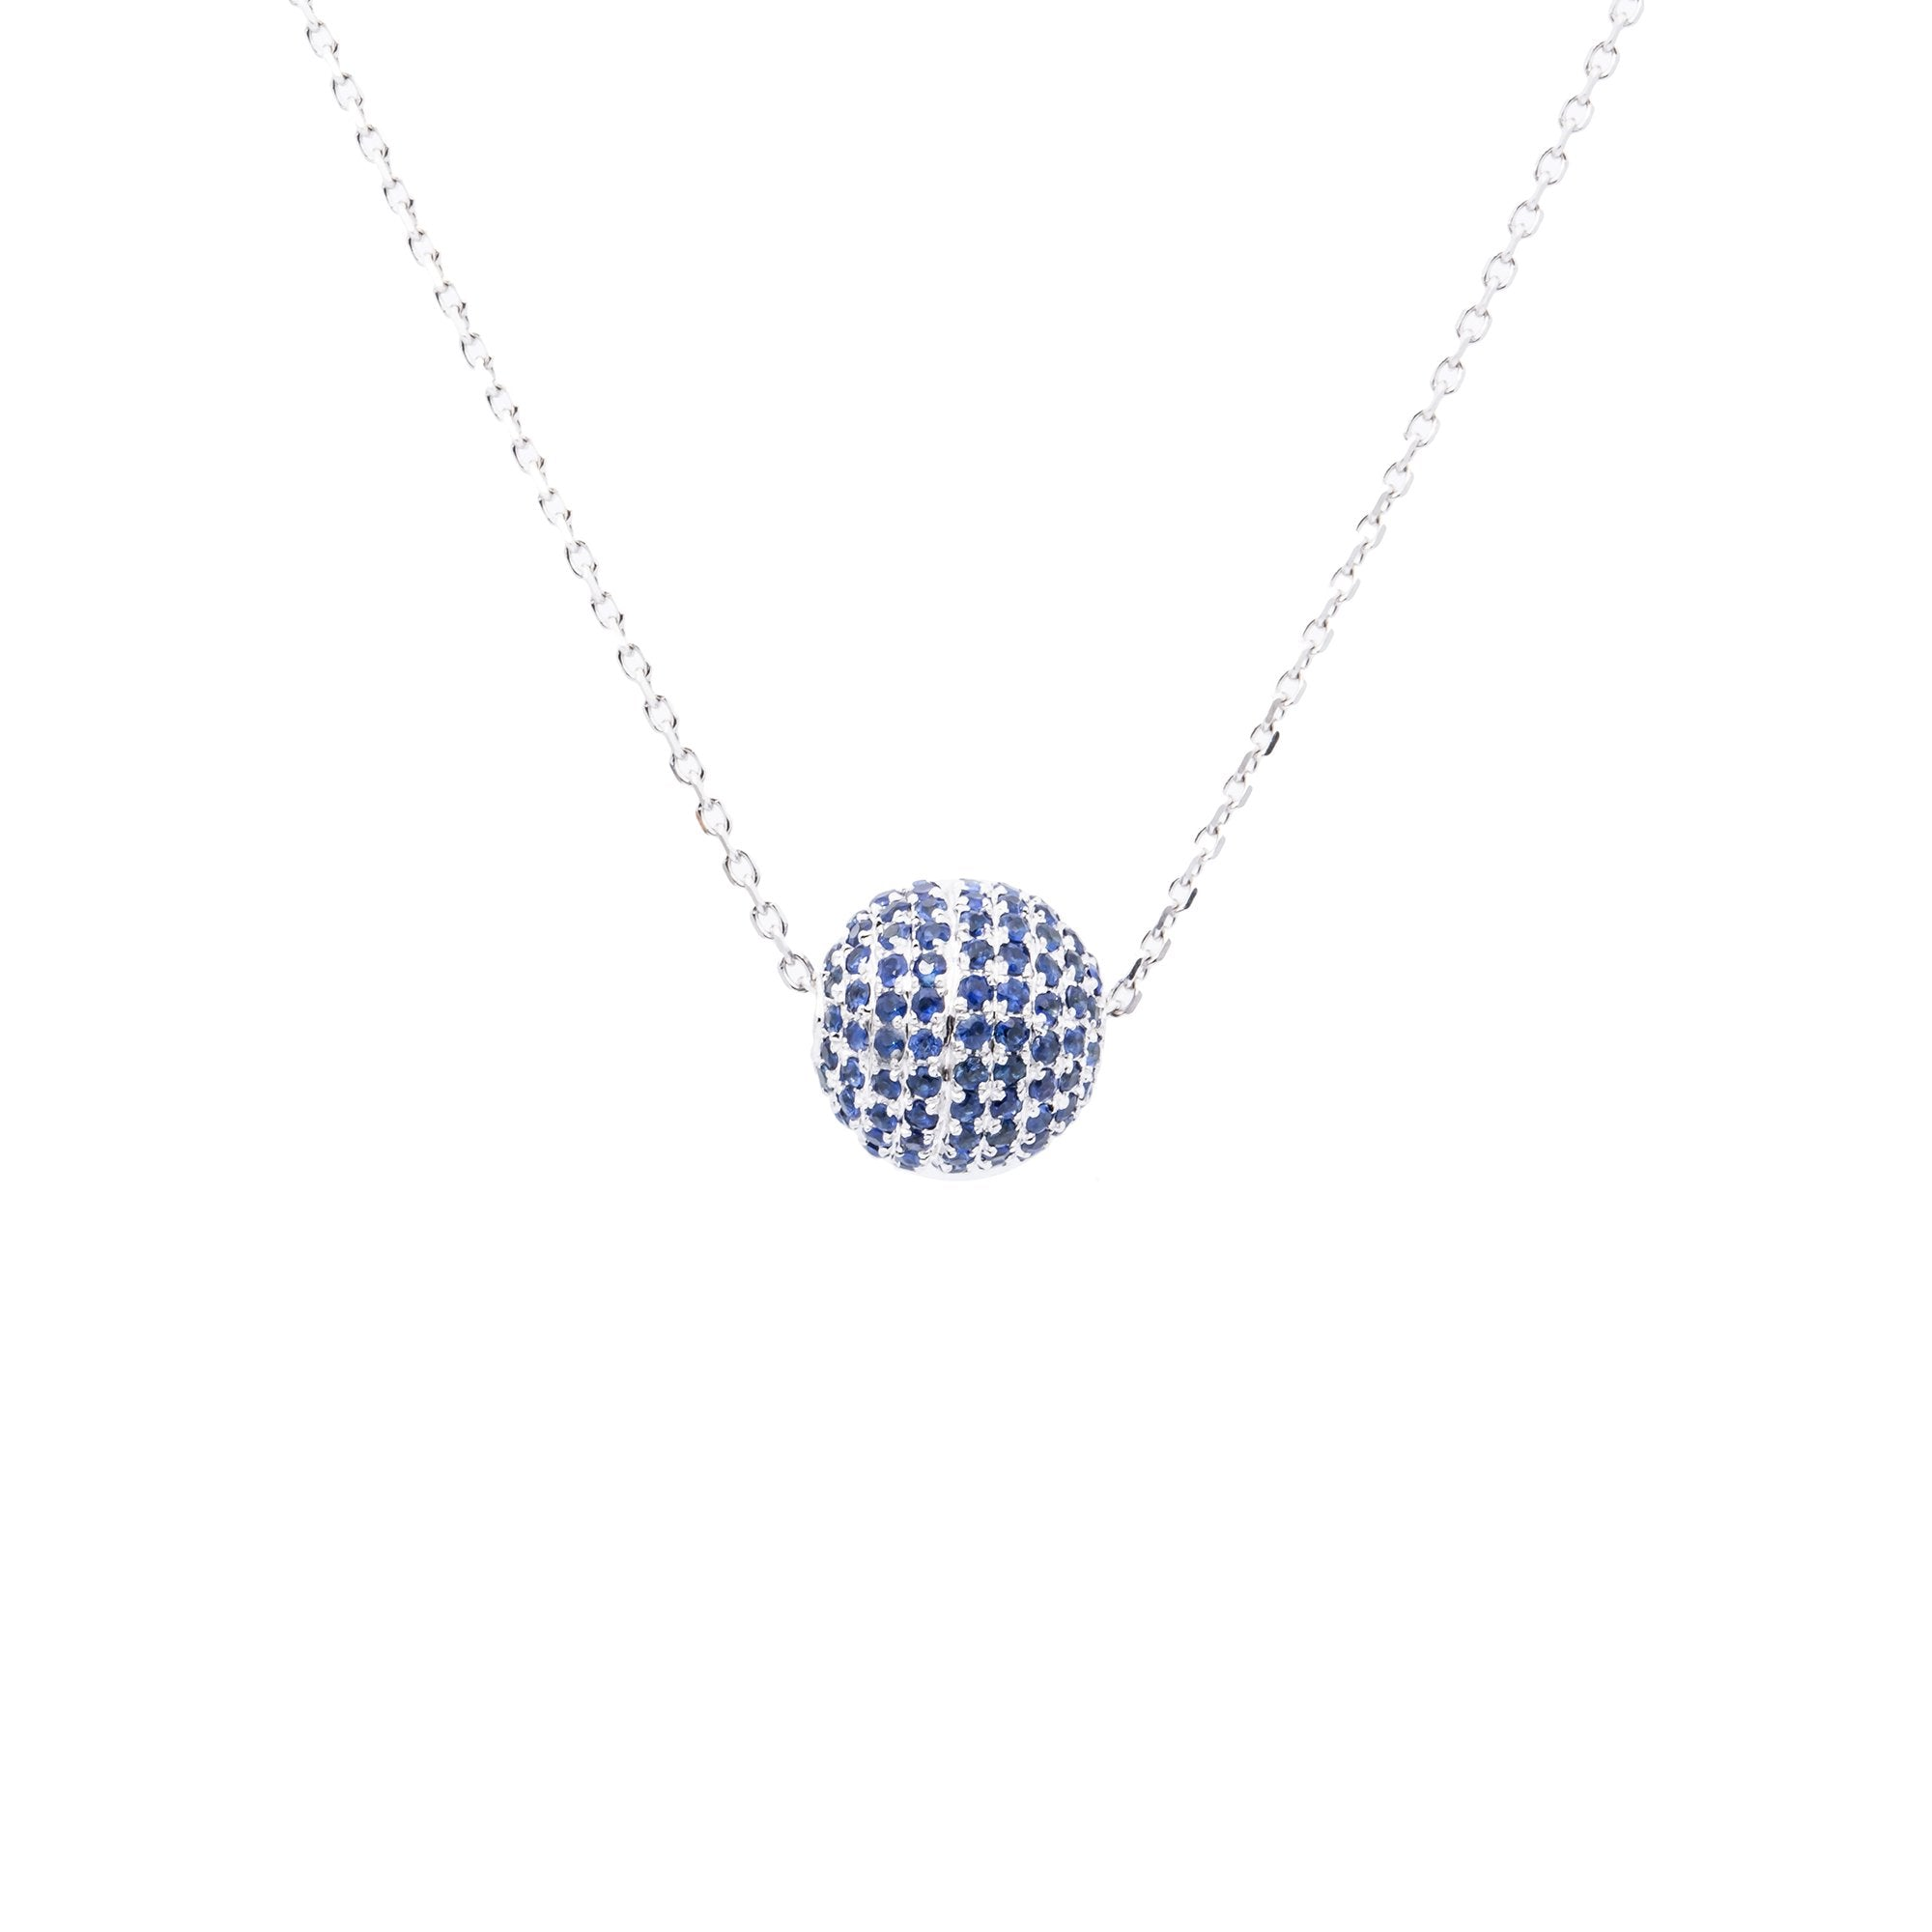 14K White Gold Sapphire Necklace